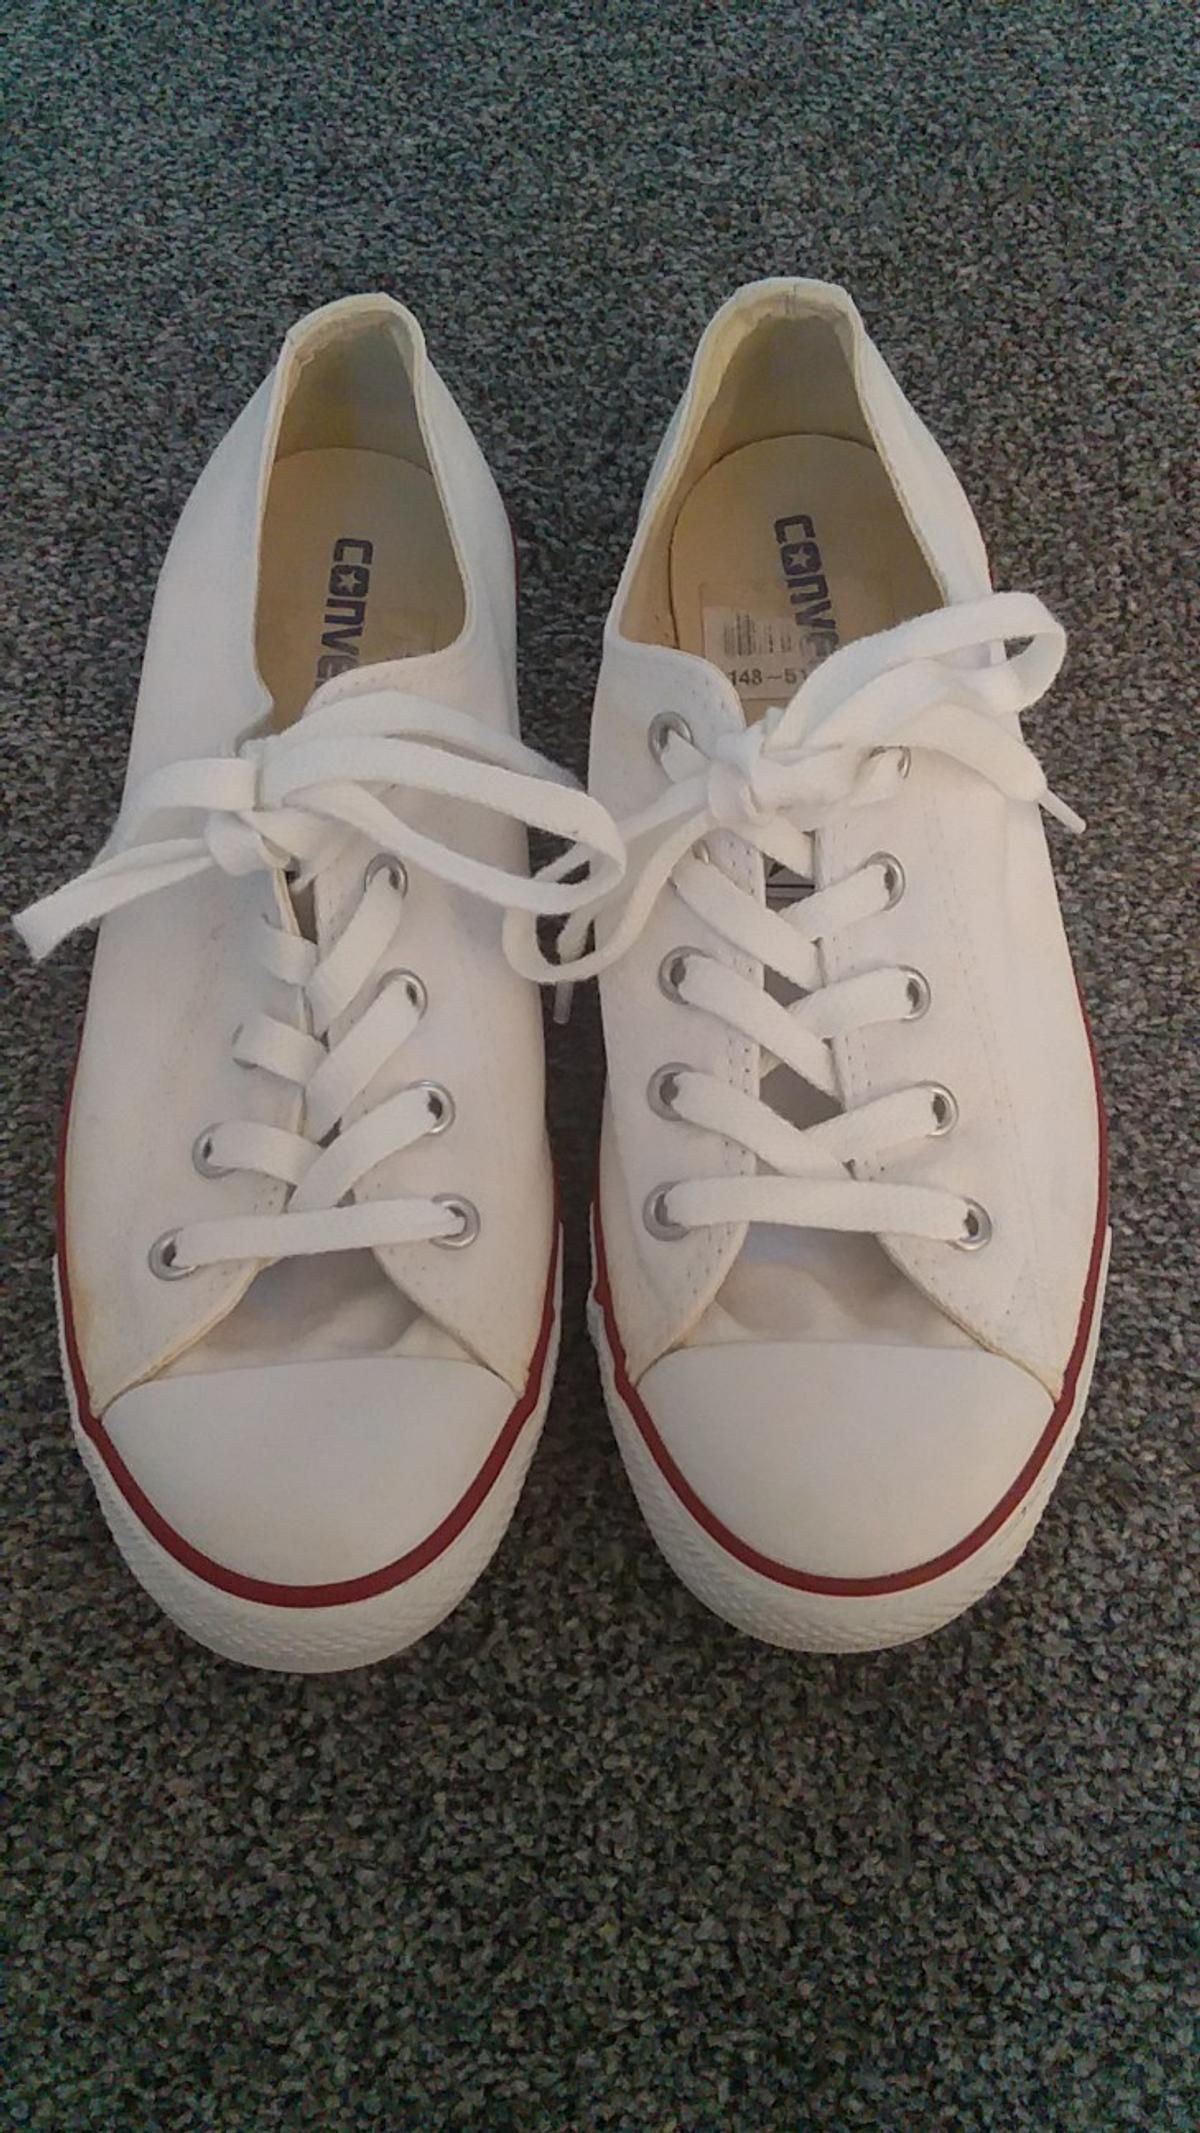 d527d75248dc CONVERSE TRAINERS SIZE 6 EXCELLENT CONDITION in CR4 Merton for ...